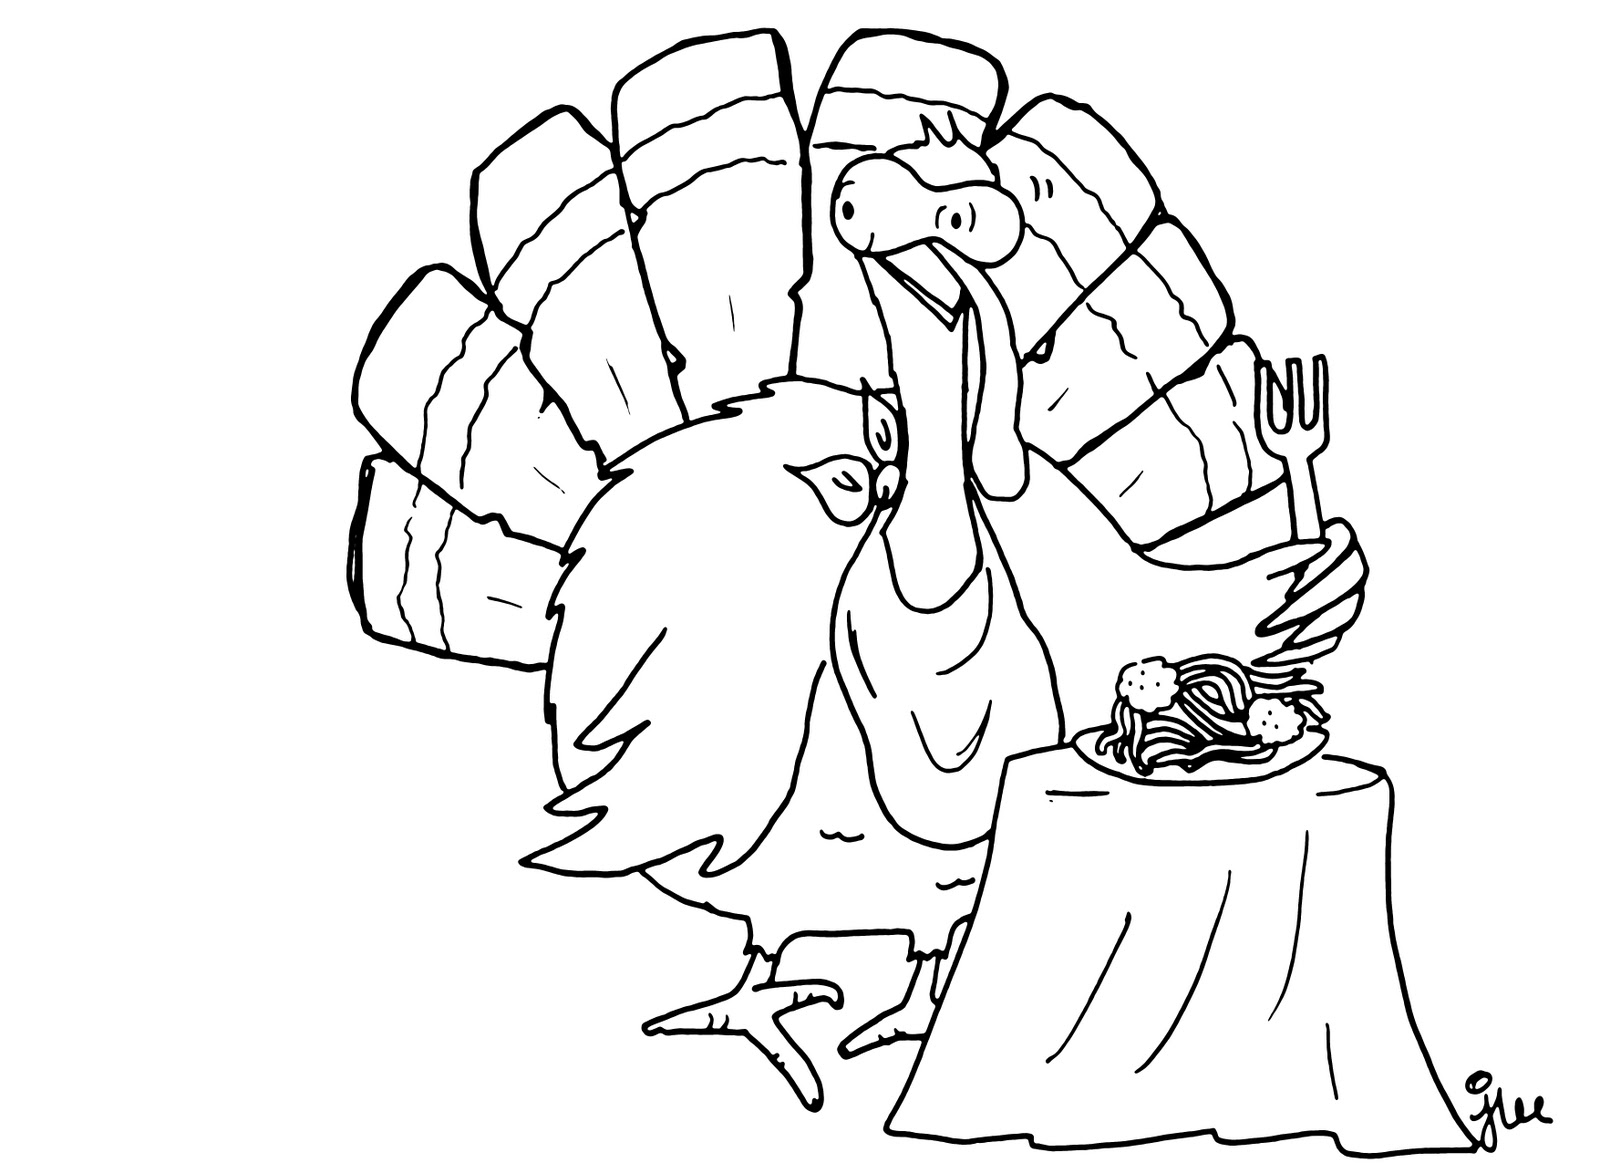 turkey head coloring pages | Turkey Head Coloring Pages